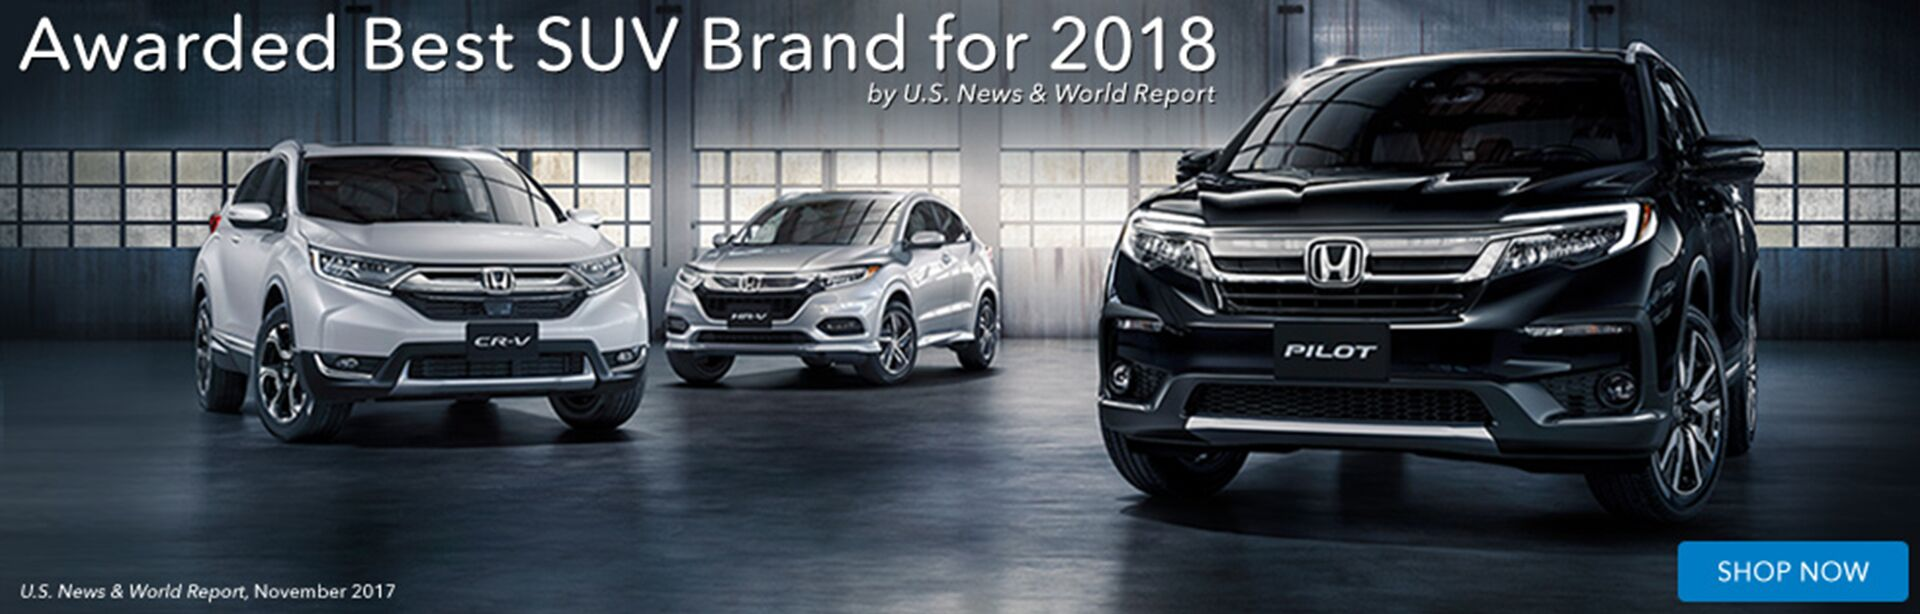 Superb Best SUV Brand For 2018